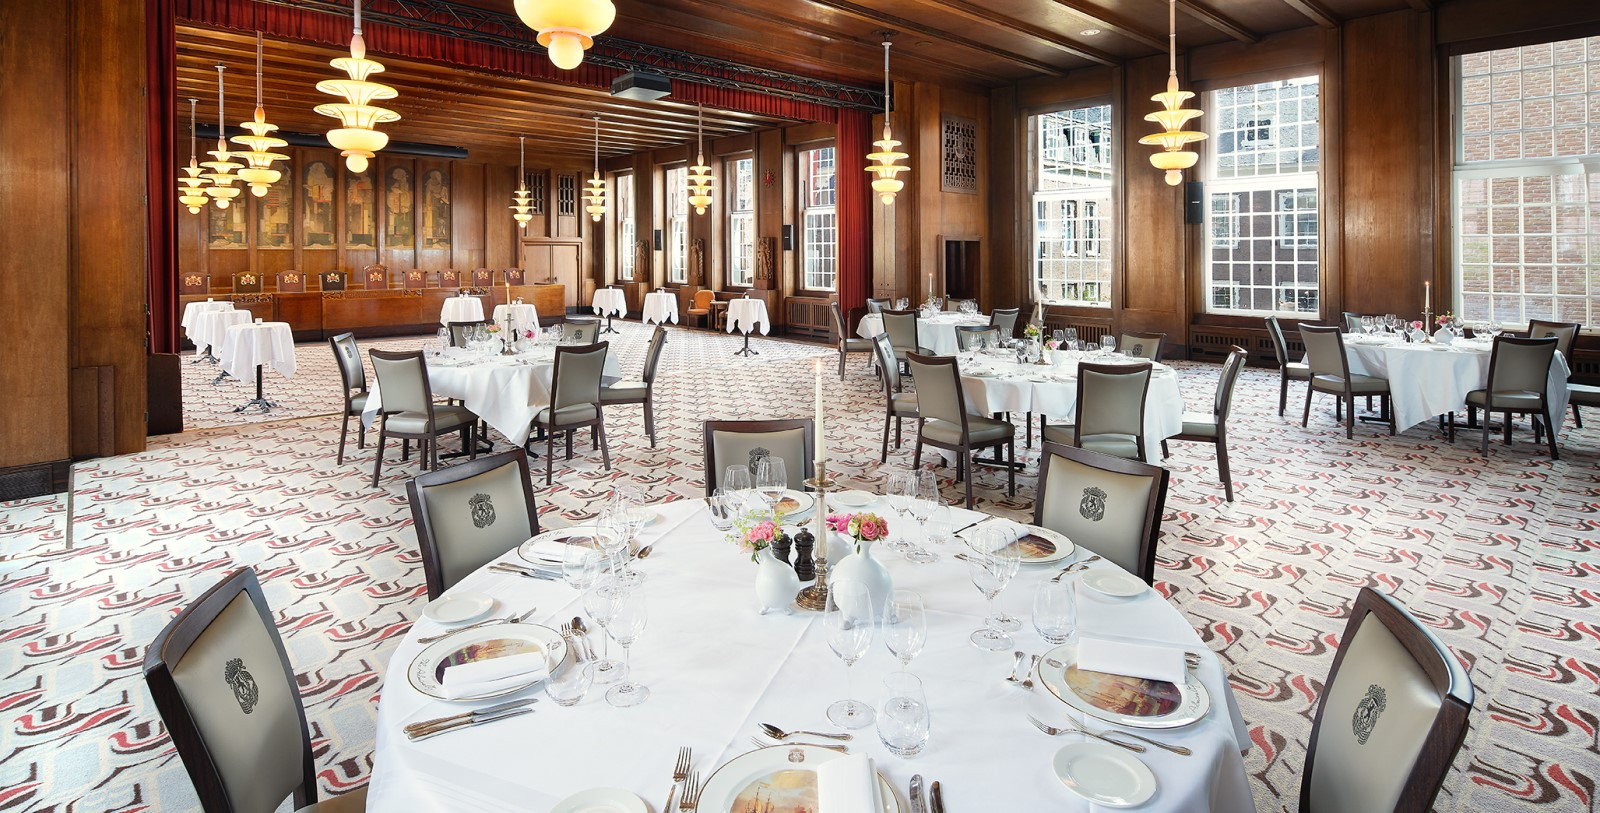 Image of the Council Chamber Room at Sofitel Legend The Grand Amsterdam, 1578, Member of Historic Hotels Worldwide, in Amsterdam, Netherlands, Special Occasions